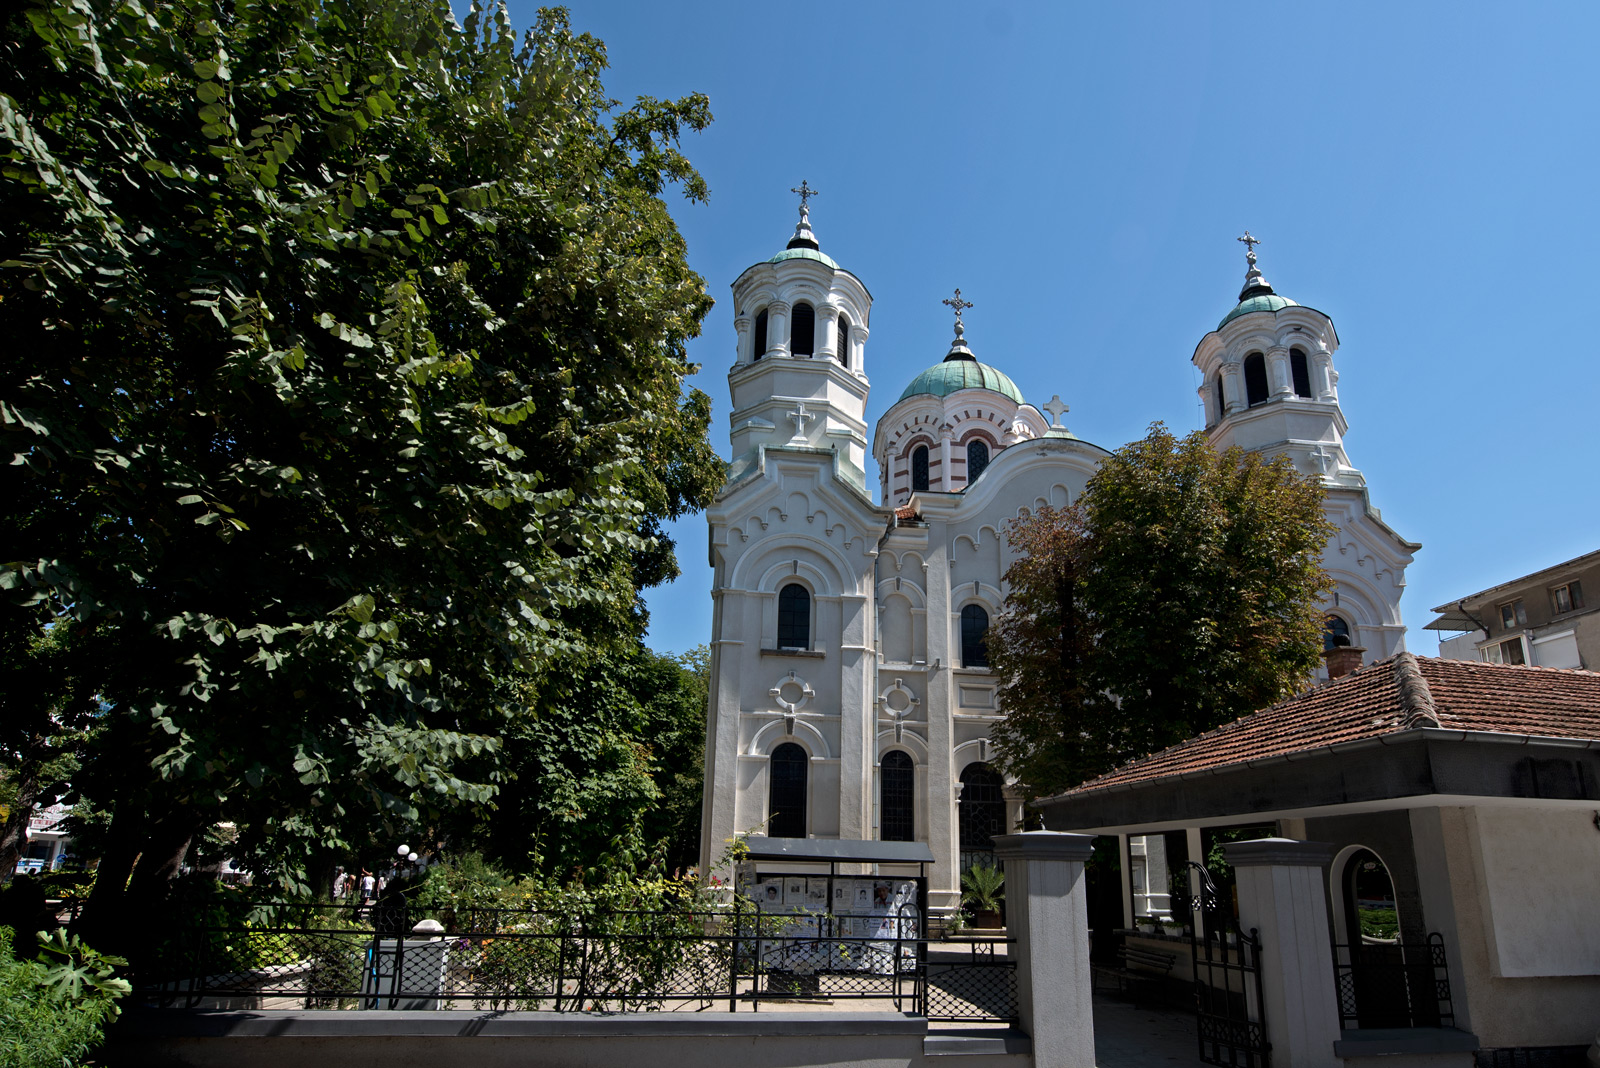 St Nicolas church in Stara Zagora